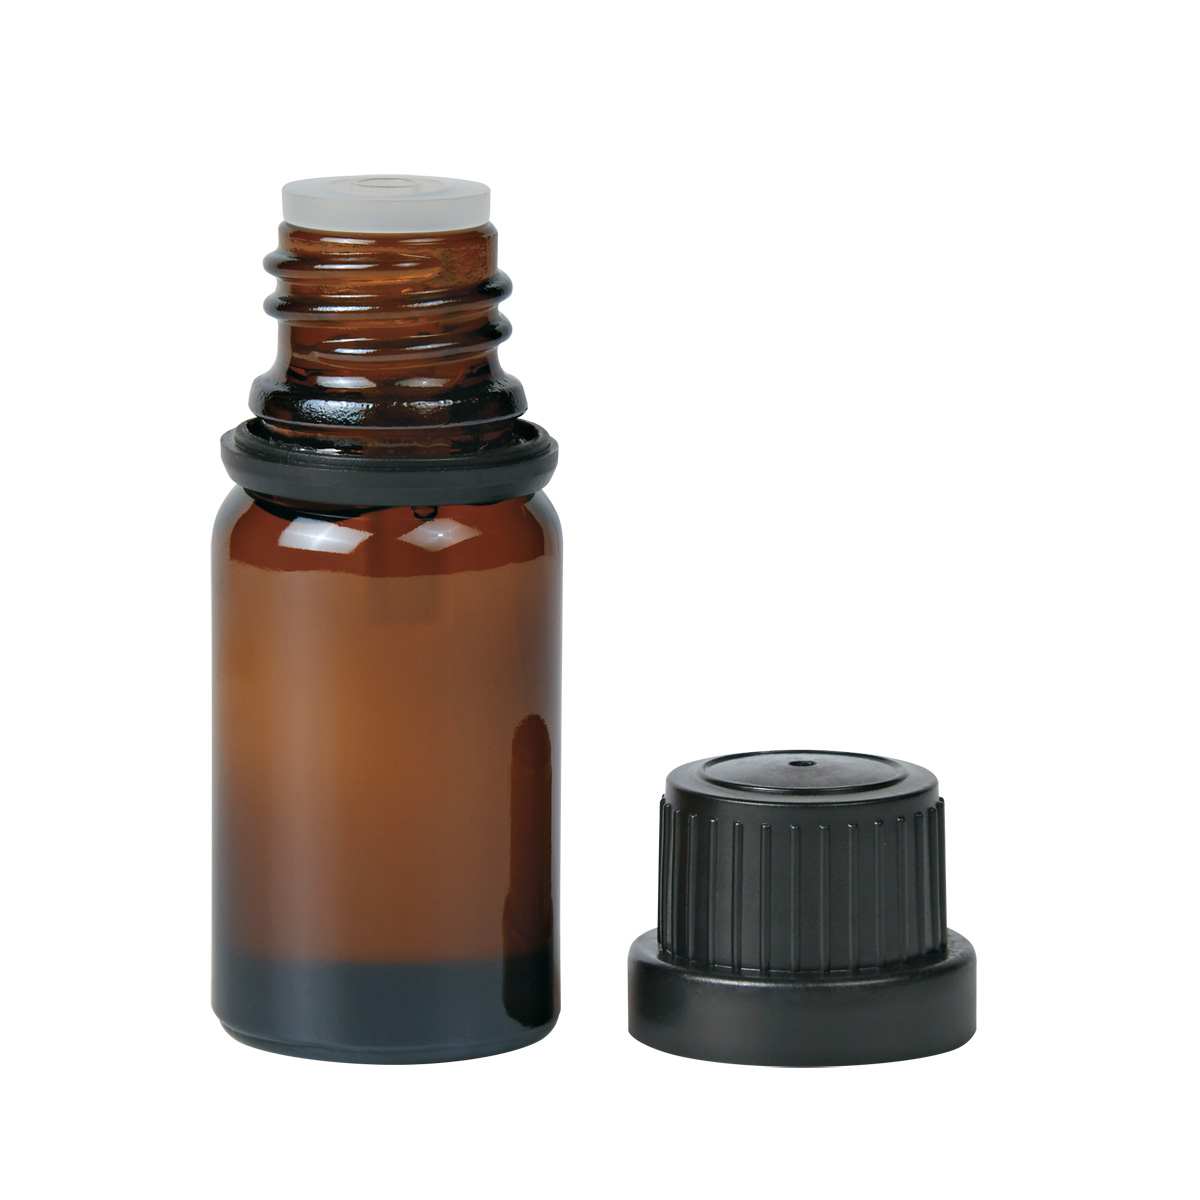 #CM 9400 - .33 Oz. Pure Scented Essential Oil